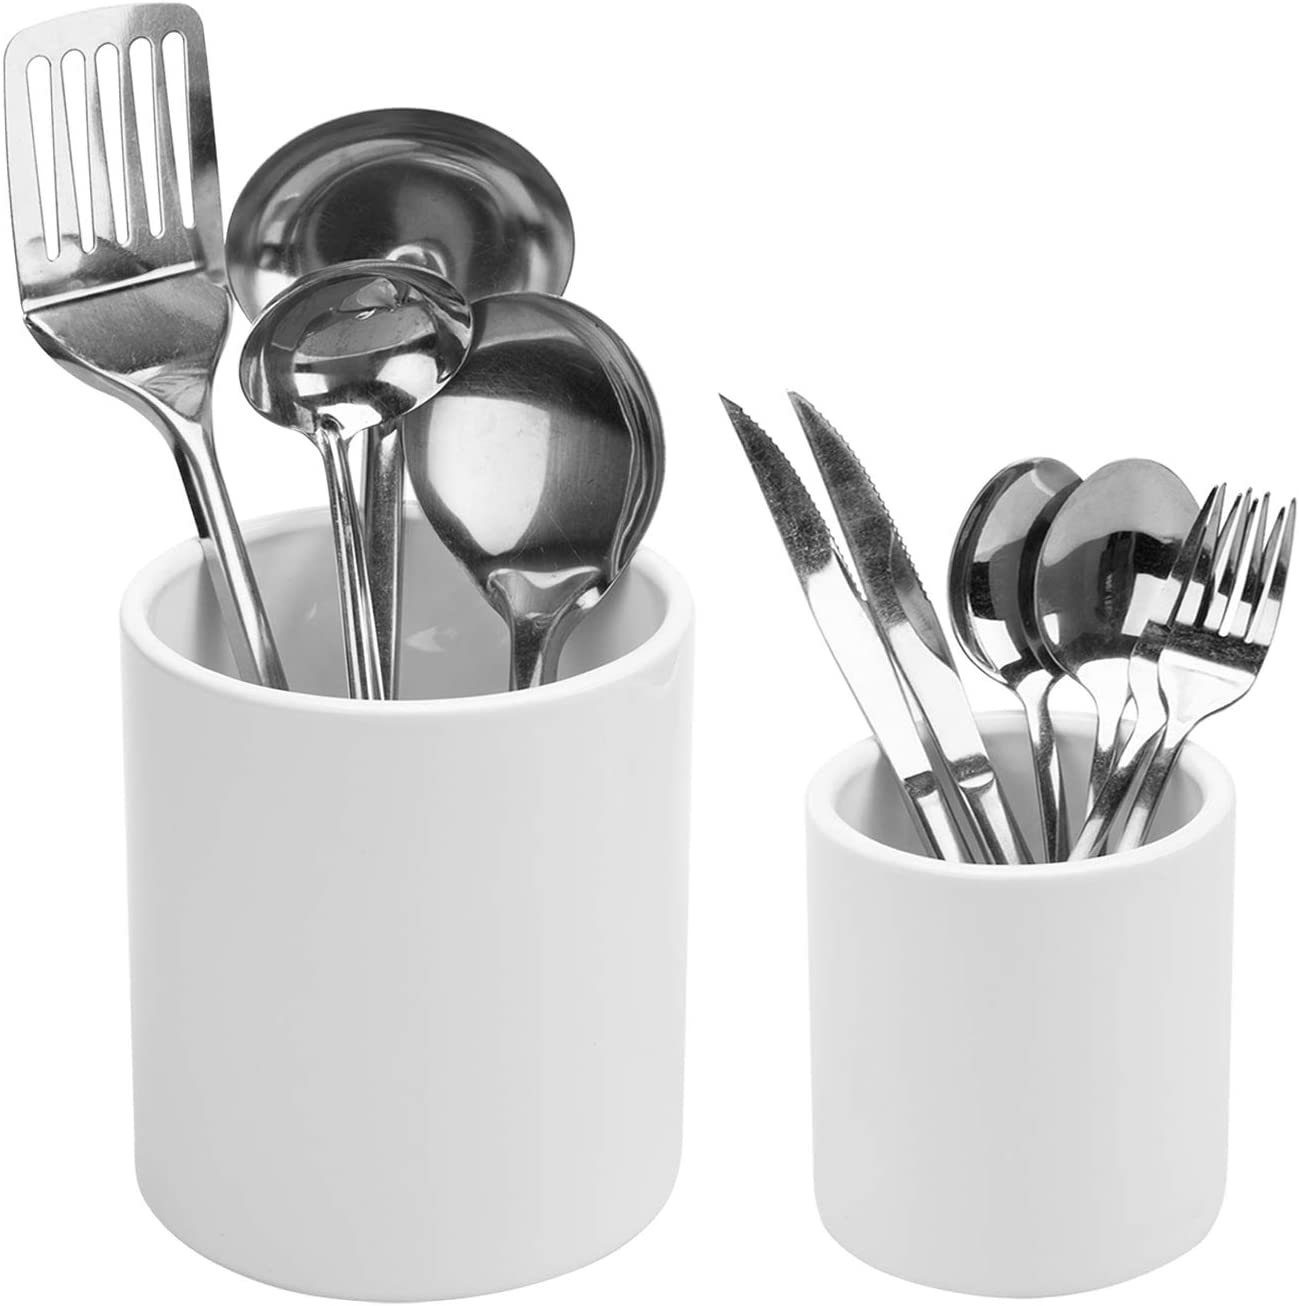 MyGift Small & Large White Ceramic Kitchen Crock Utensil Holder, Set of 2